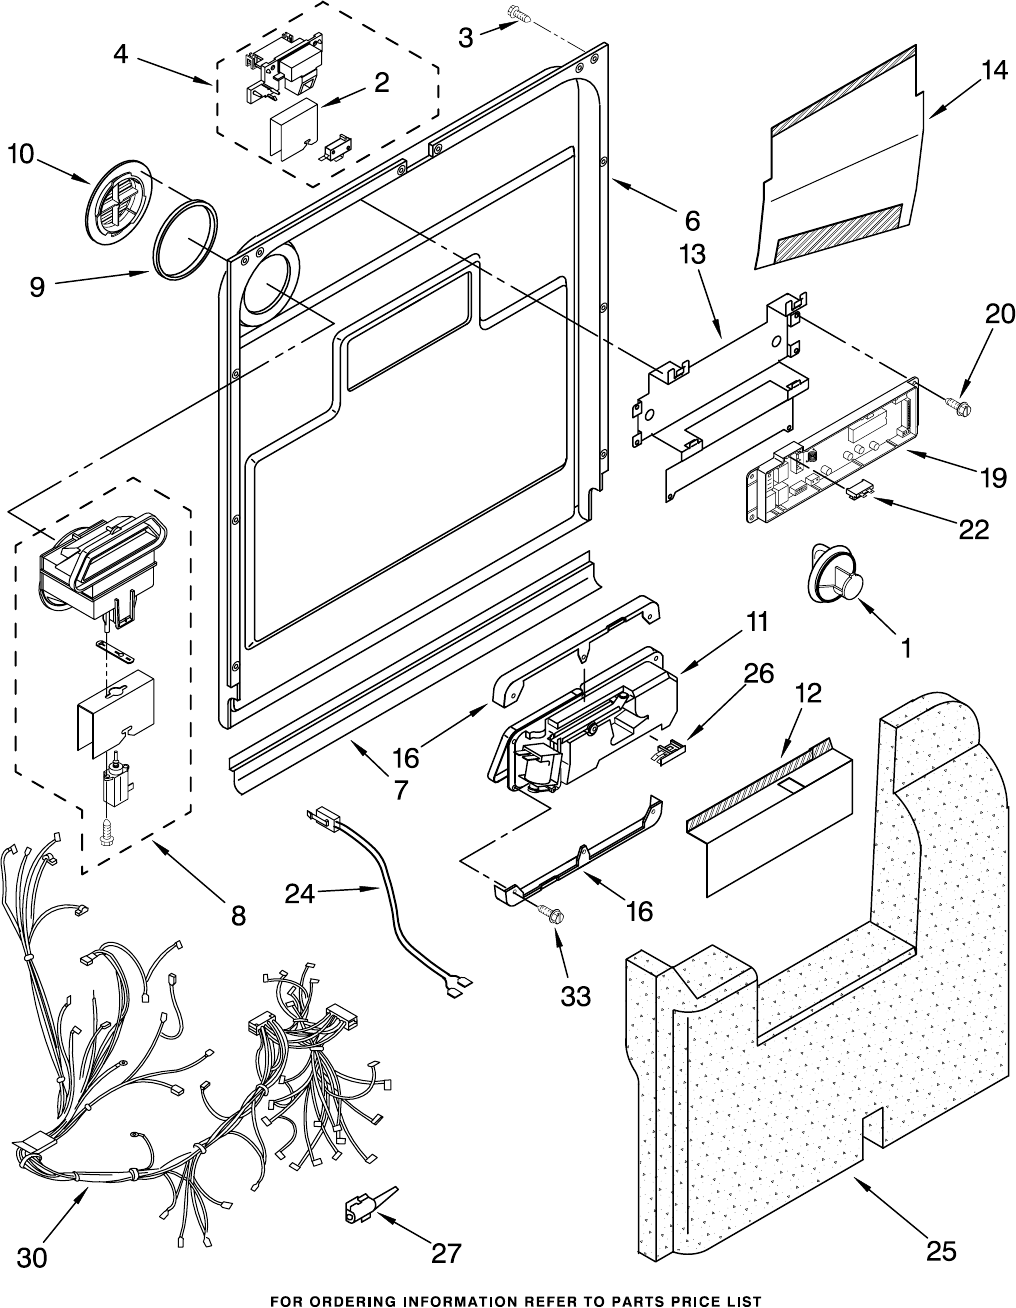 wiring diagram for kitchenaid refrigerator with Ge Dishwasher Wiring Harness on Model Number Locator 8 repair in addition Kitchenaid Repair together with Wiring Diagram For Asko Dishwasher in addition Eskimo Ice Auger Parts List Wiring Diagrams as well Kenmore Dishwasher Schematics.